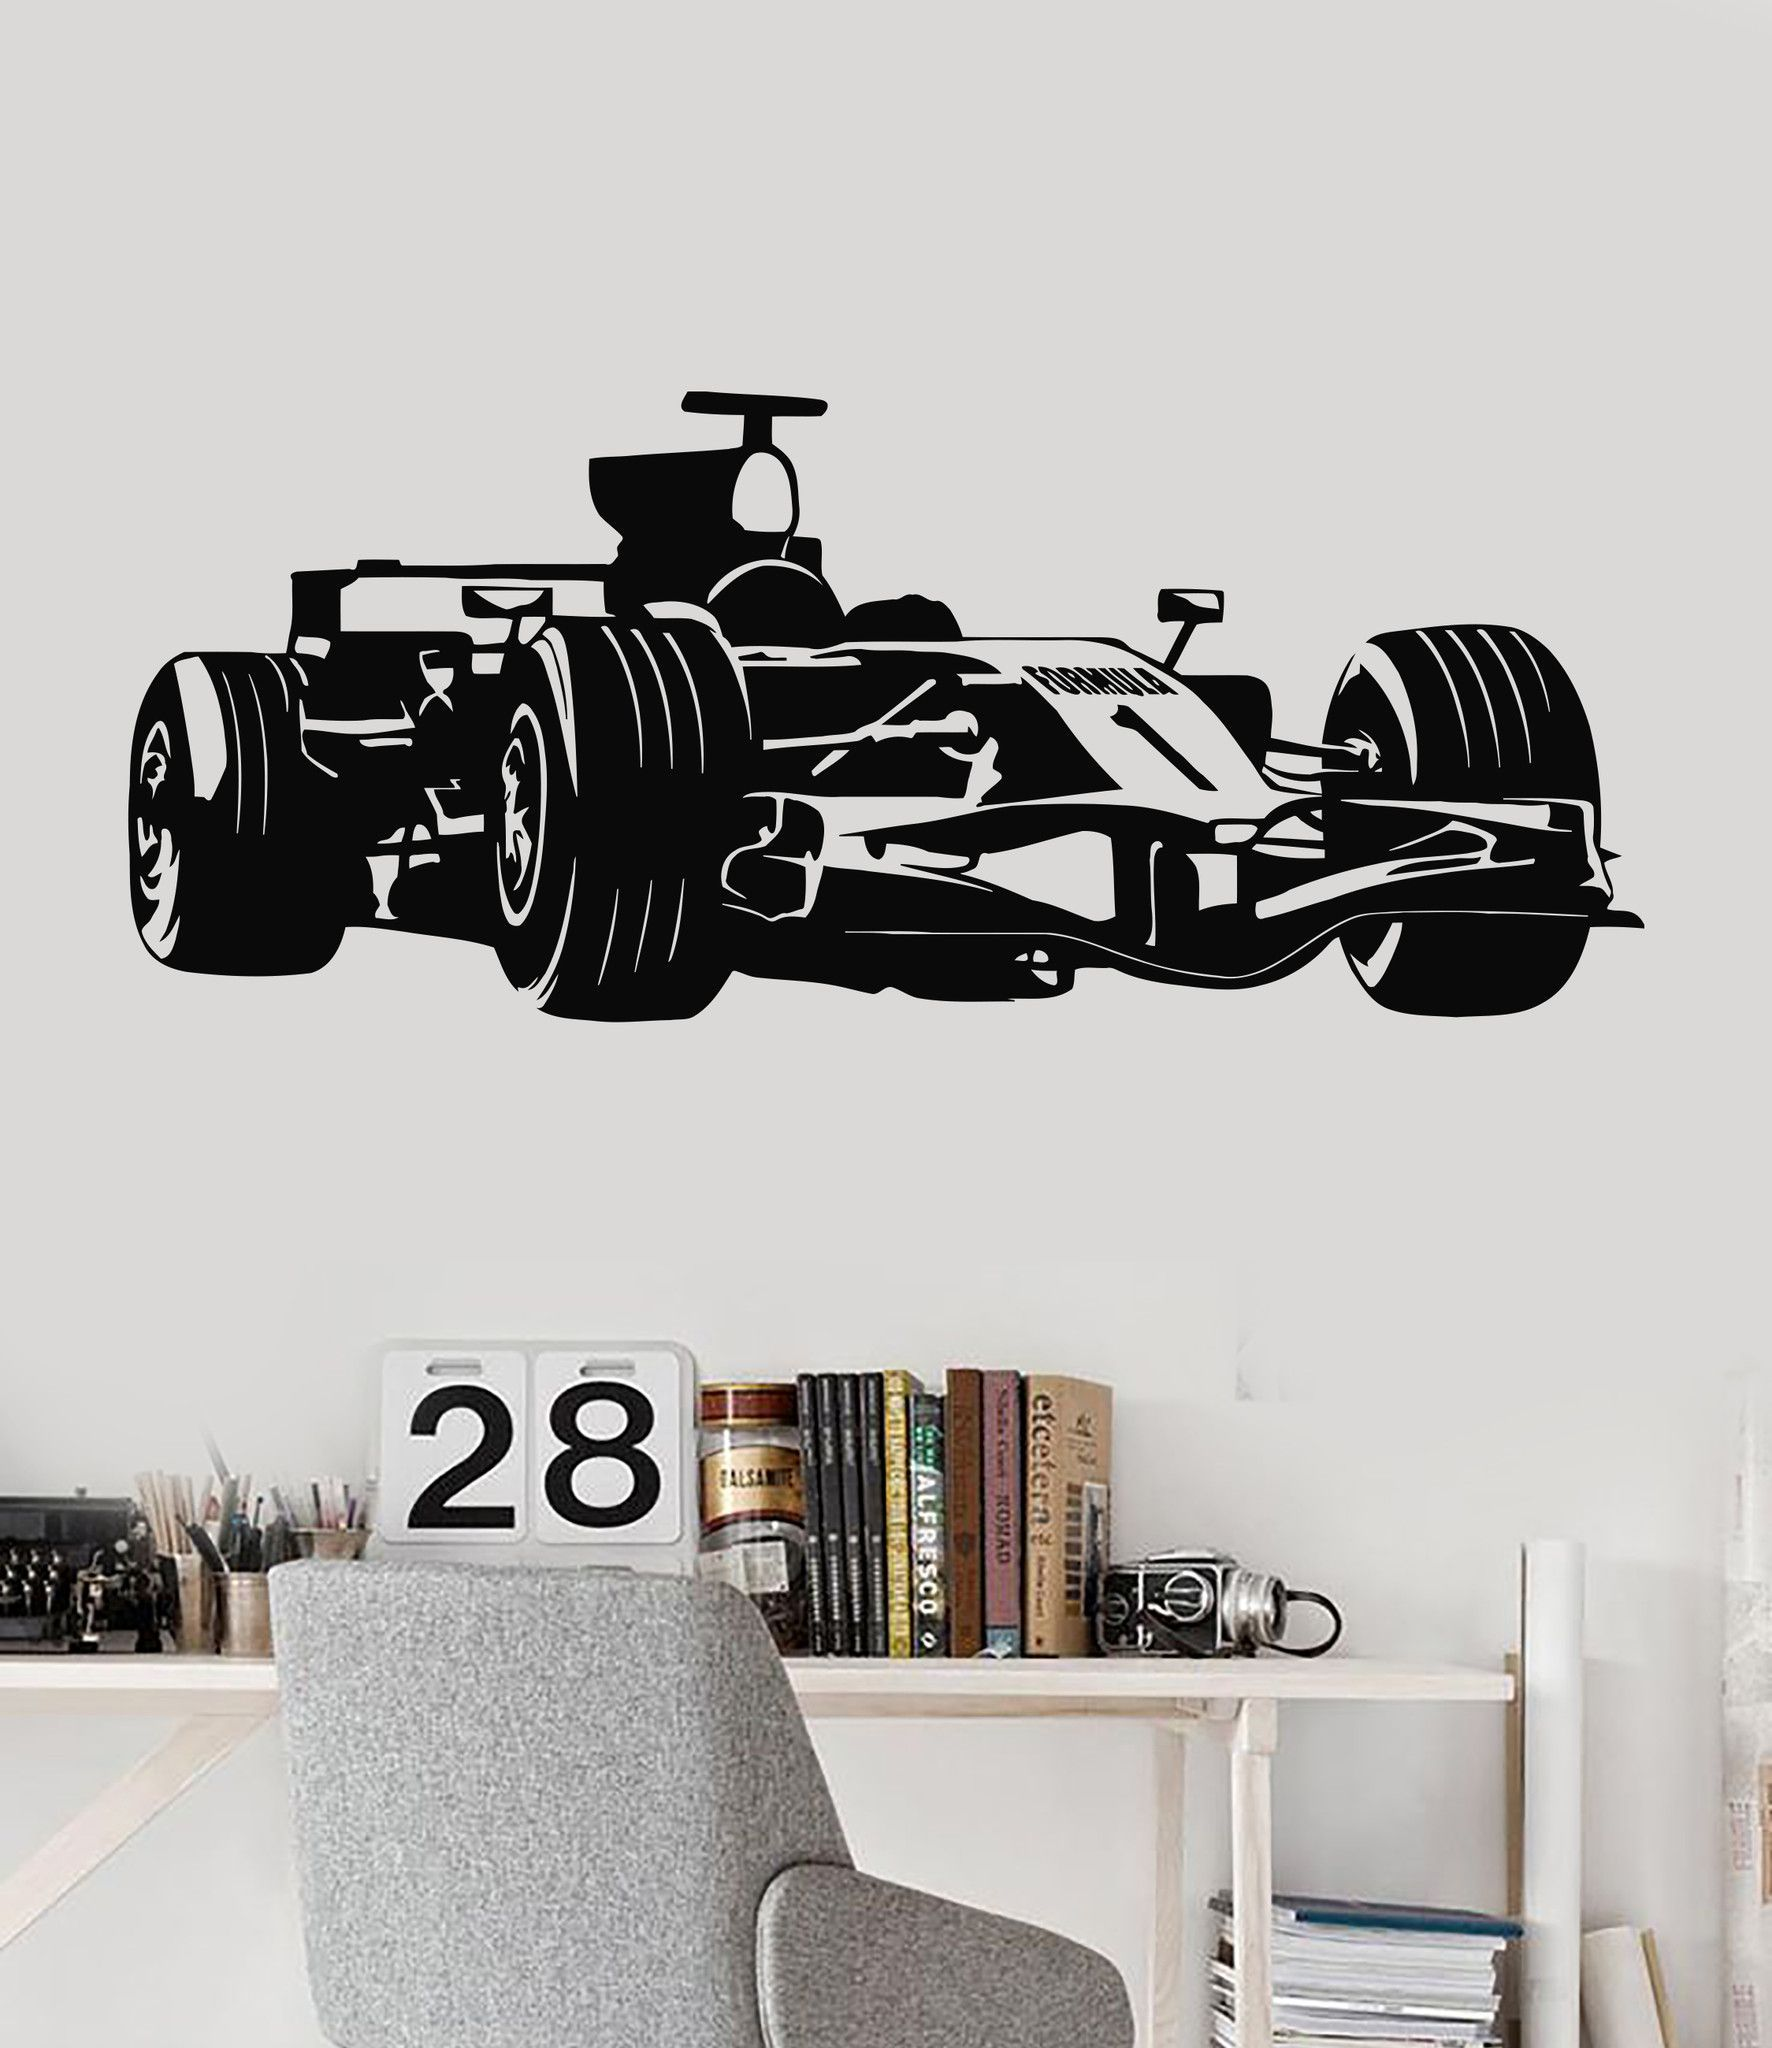 Vinyl Wall Decal Formula Race Car Garage Decor Childrens Room - Wall decals cars